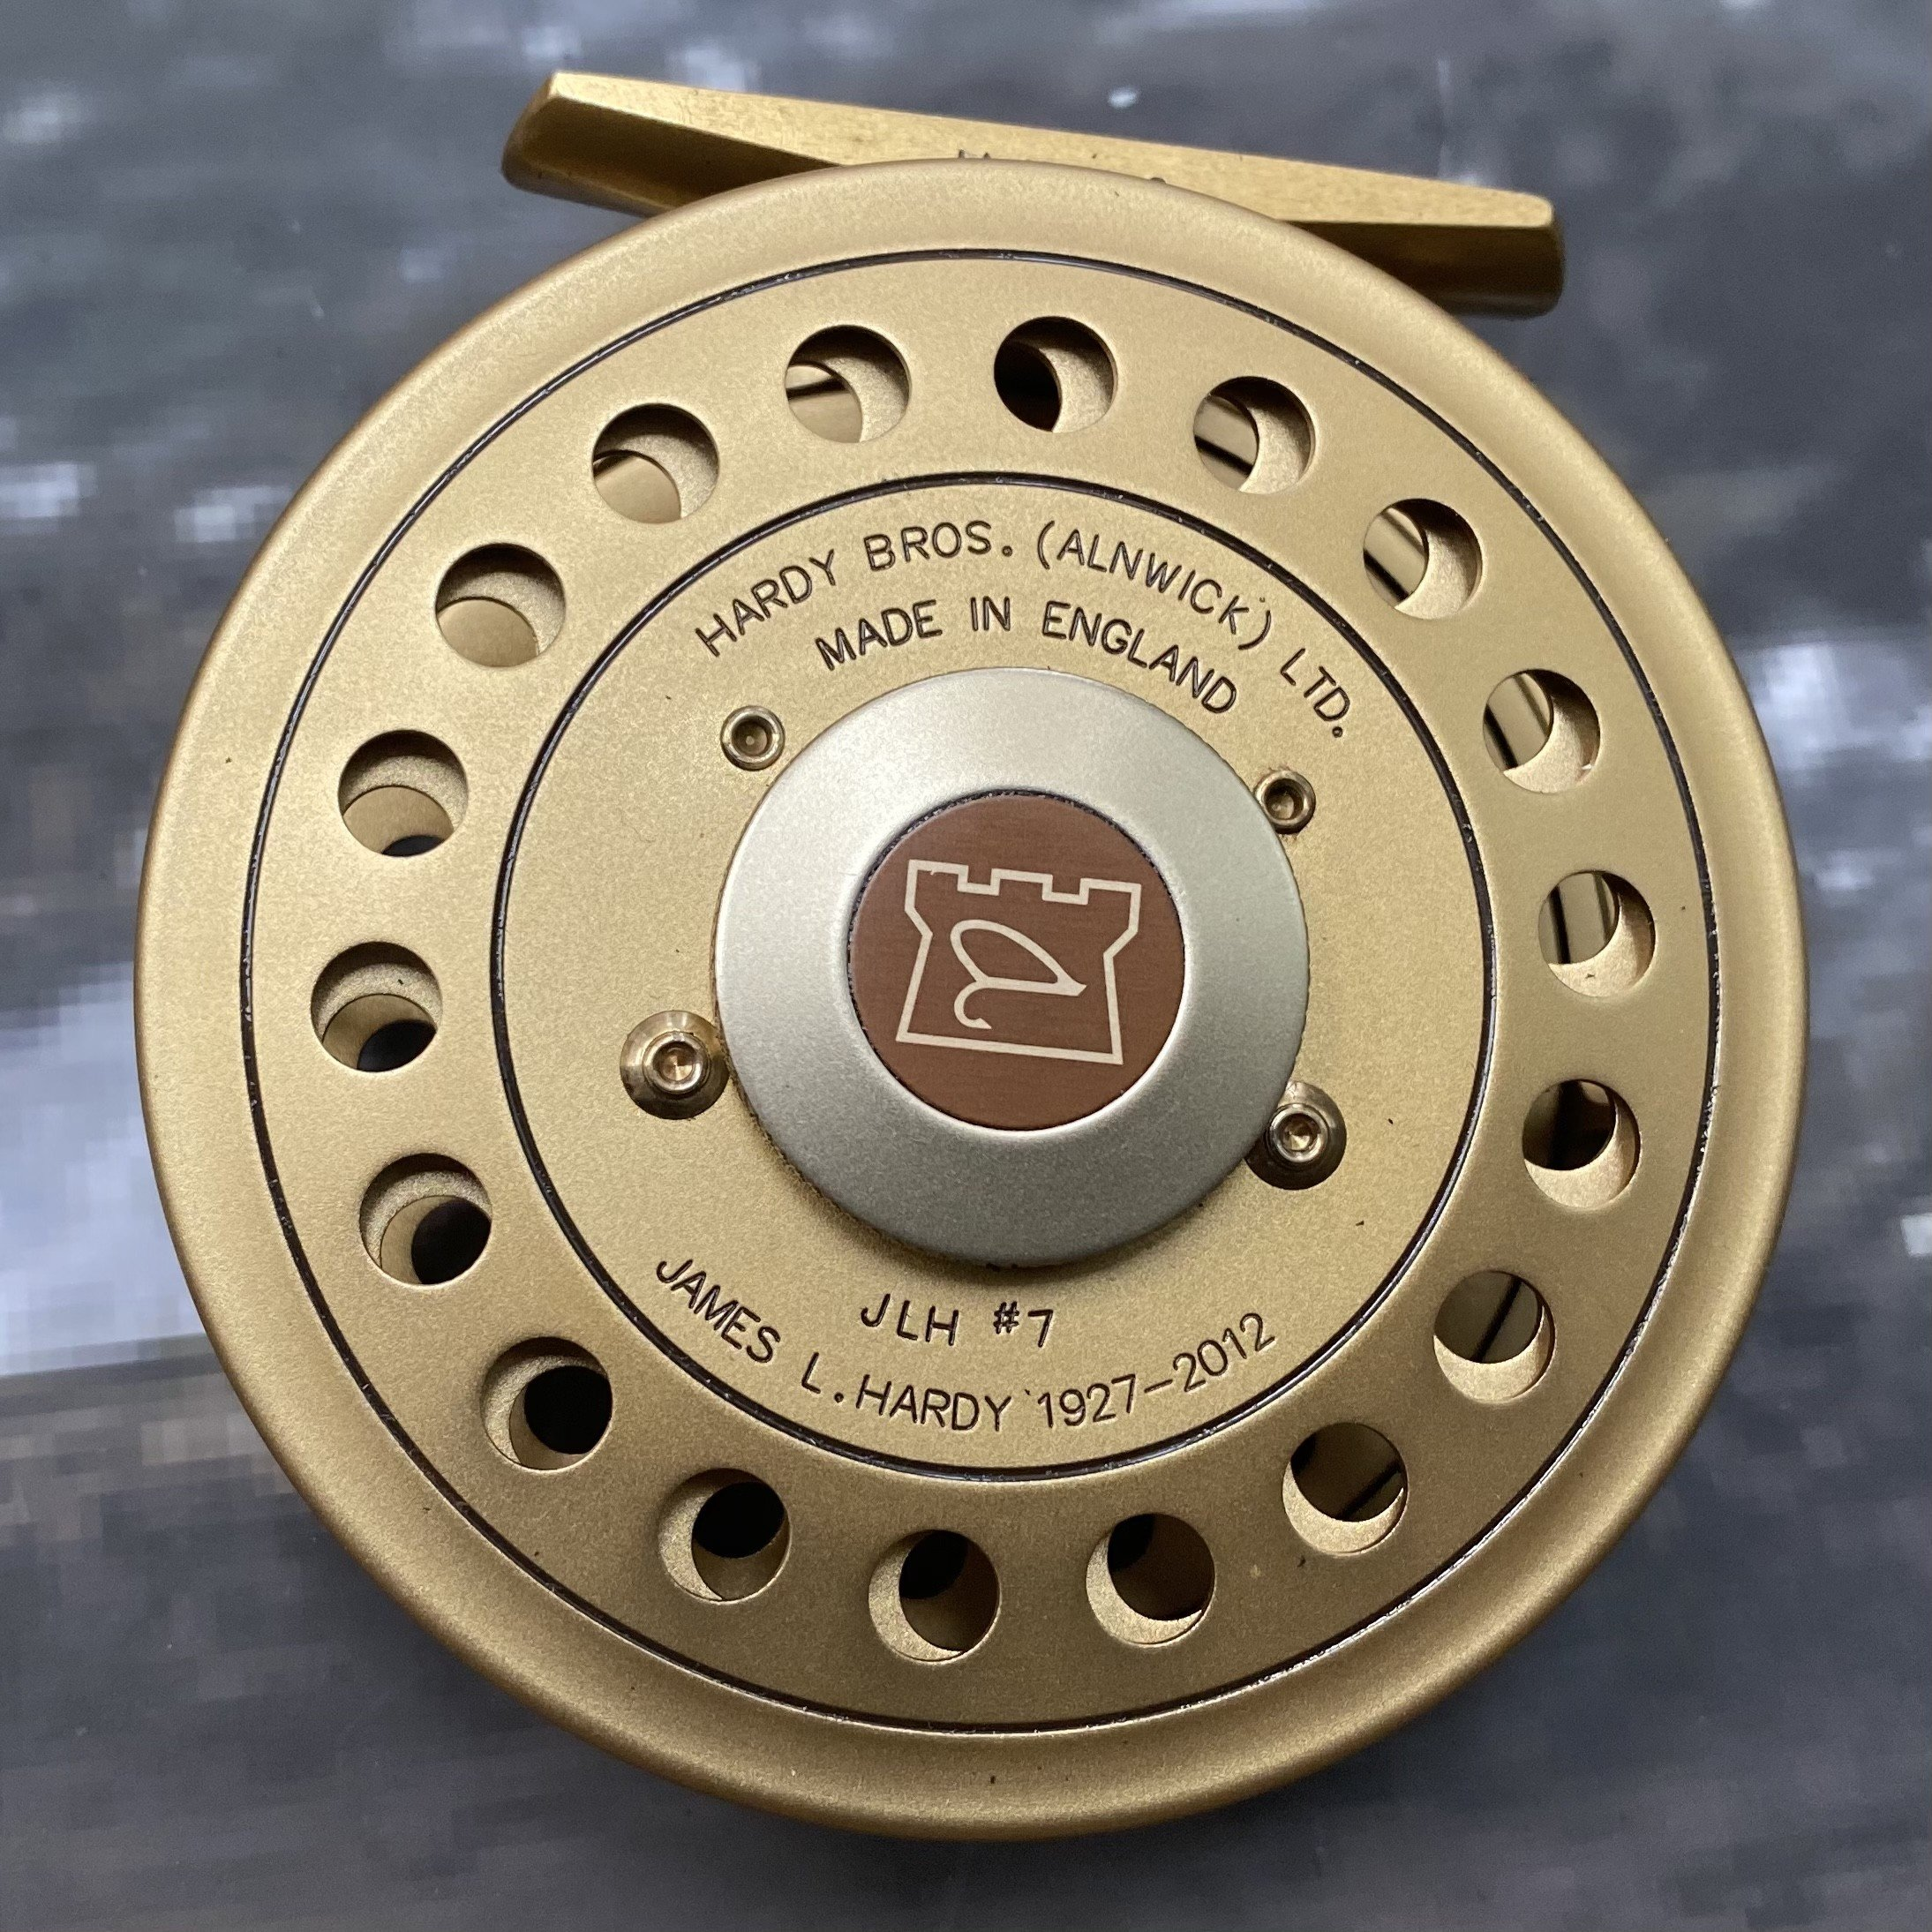 The JLH #7 Commemorative Fly Reel MADE IN ENGLAND - LIMITED EDITION image 1